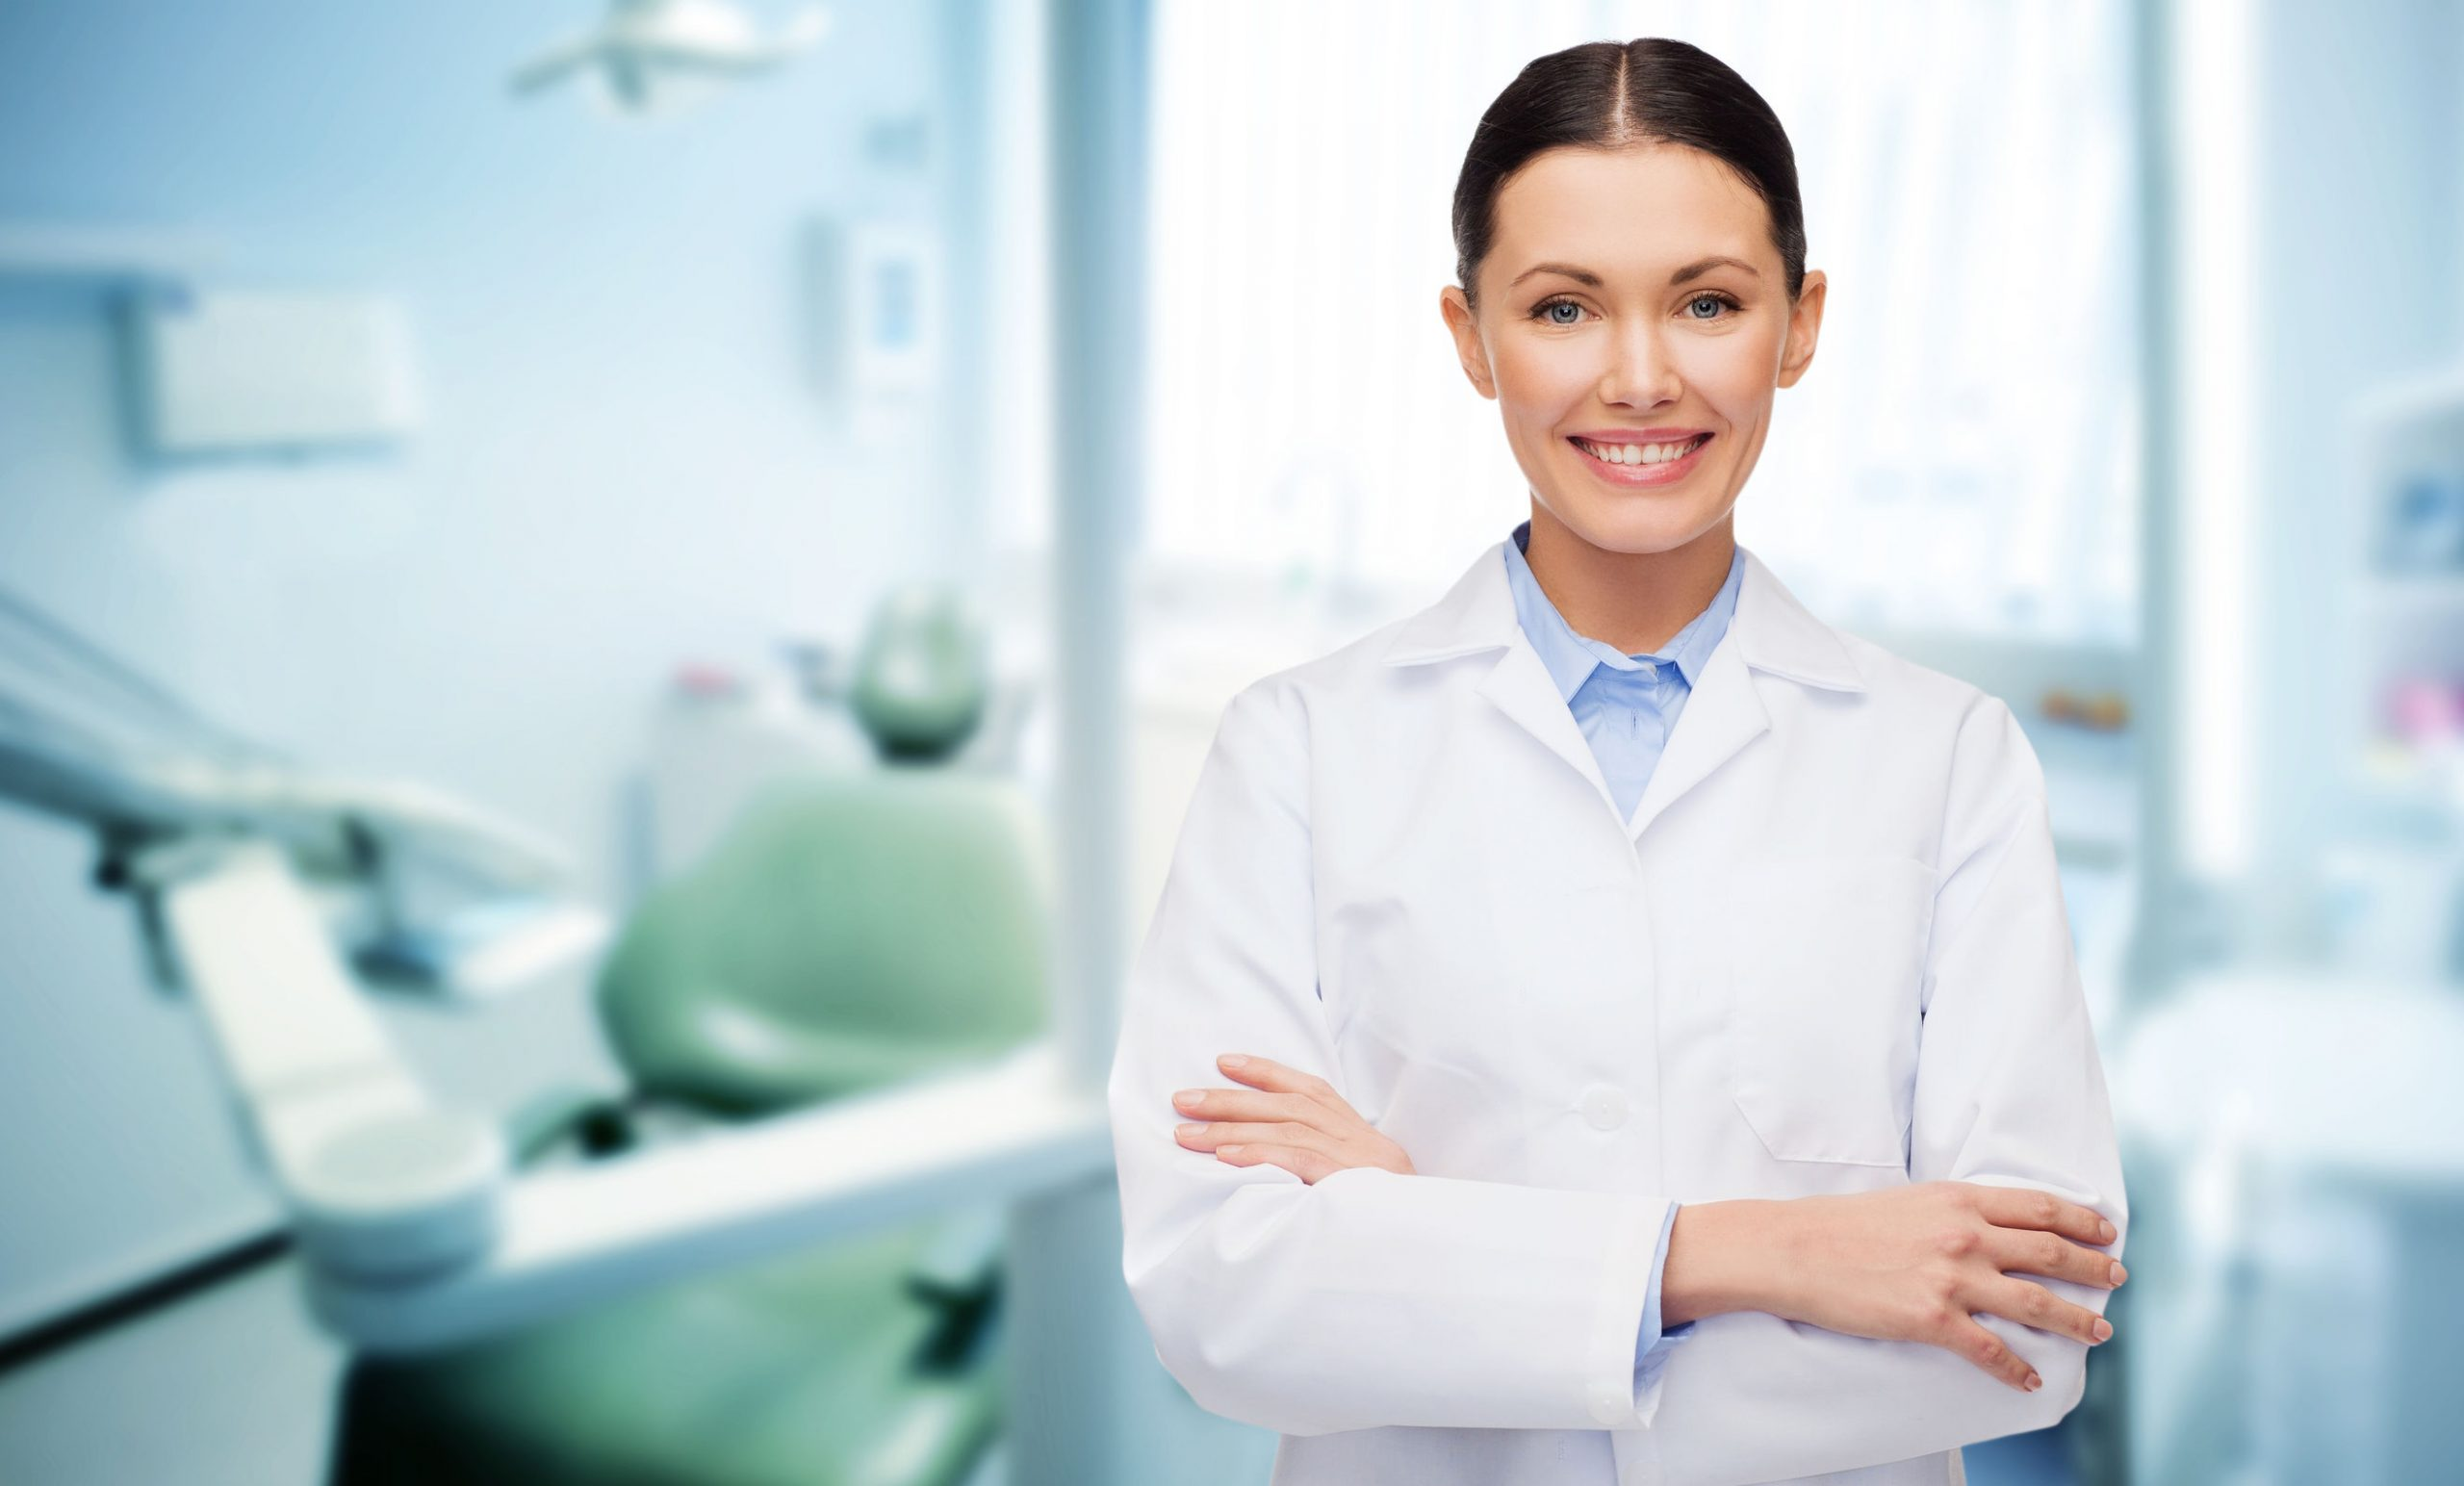 Purchasing a Dental Practice? Here are 4 Questions You Should Ask